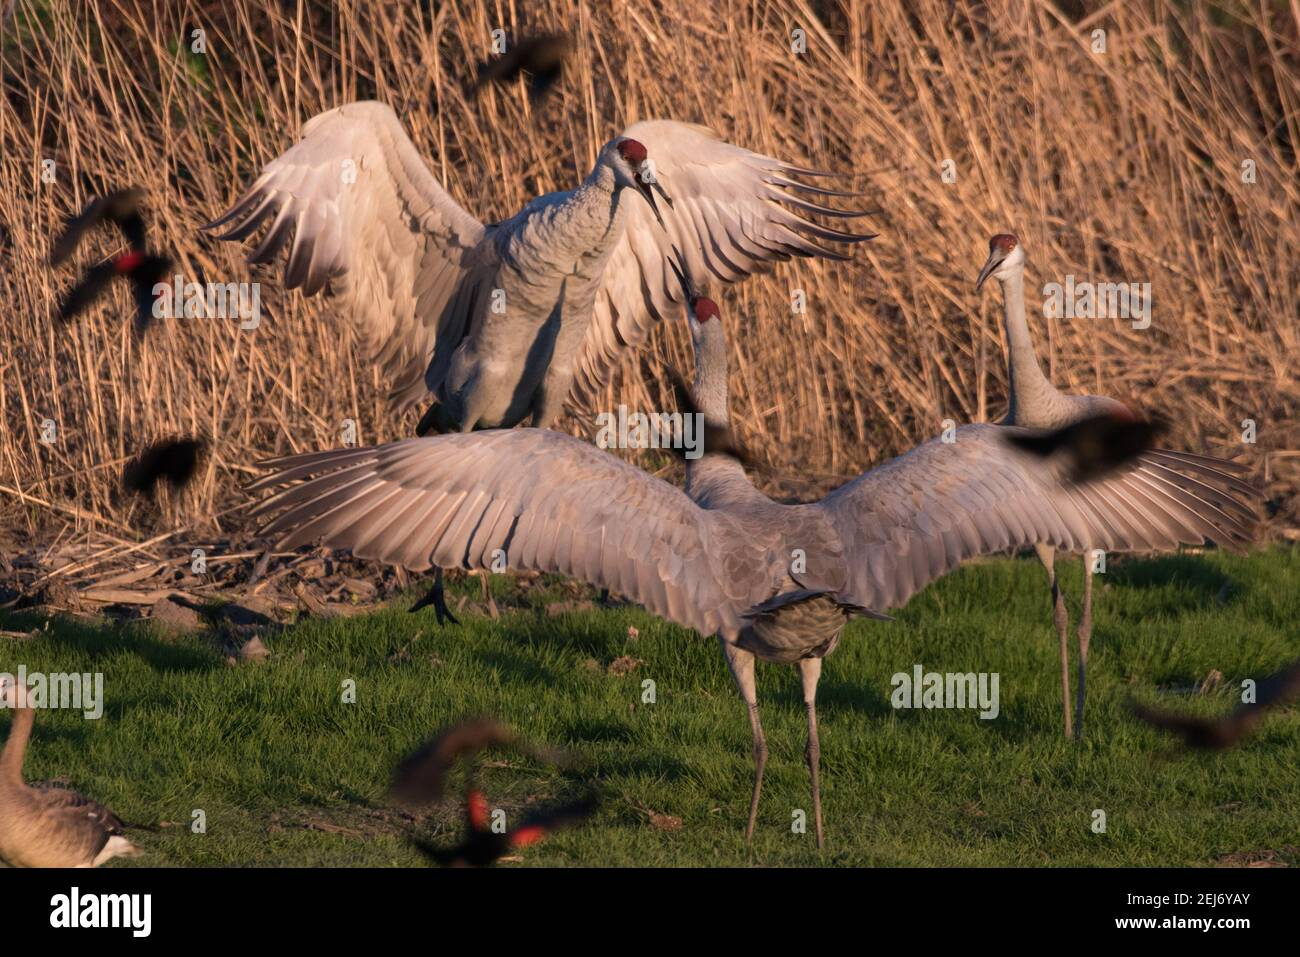 Sandhill cranes (Antigone canadensis) jumping around and fighting each other in the Cosumnes River preserve in Central California. Stock Photo